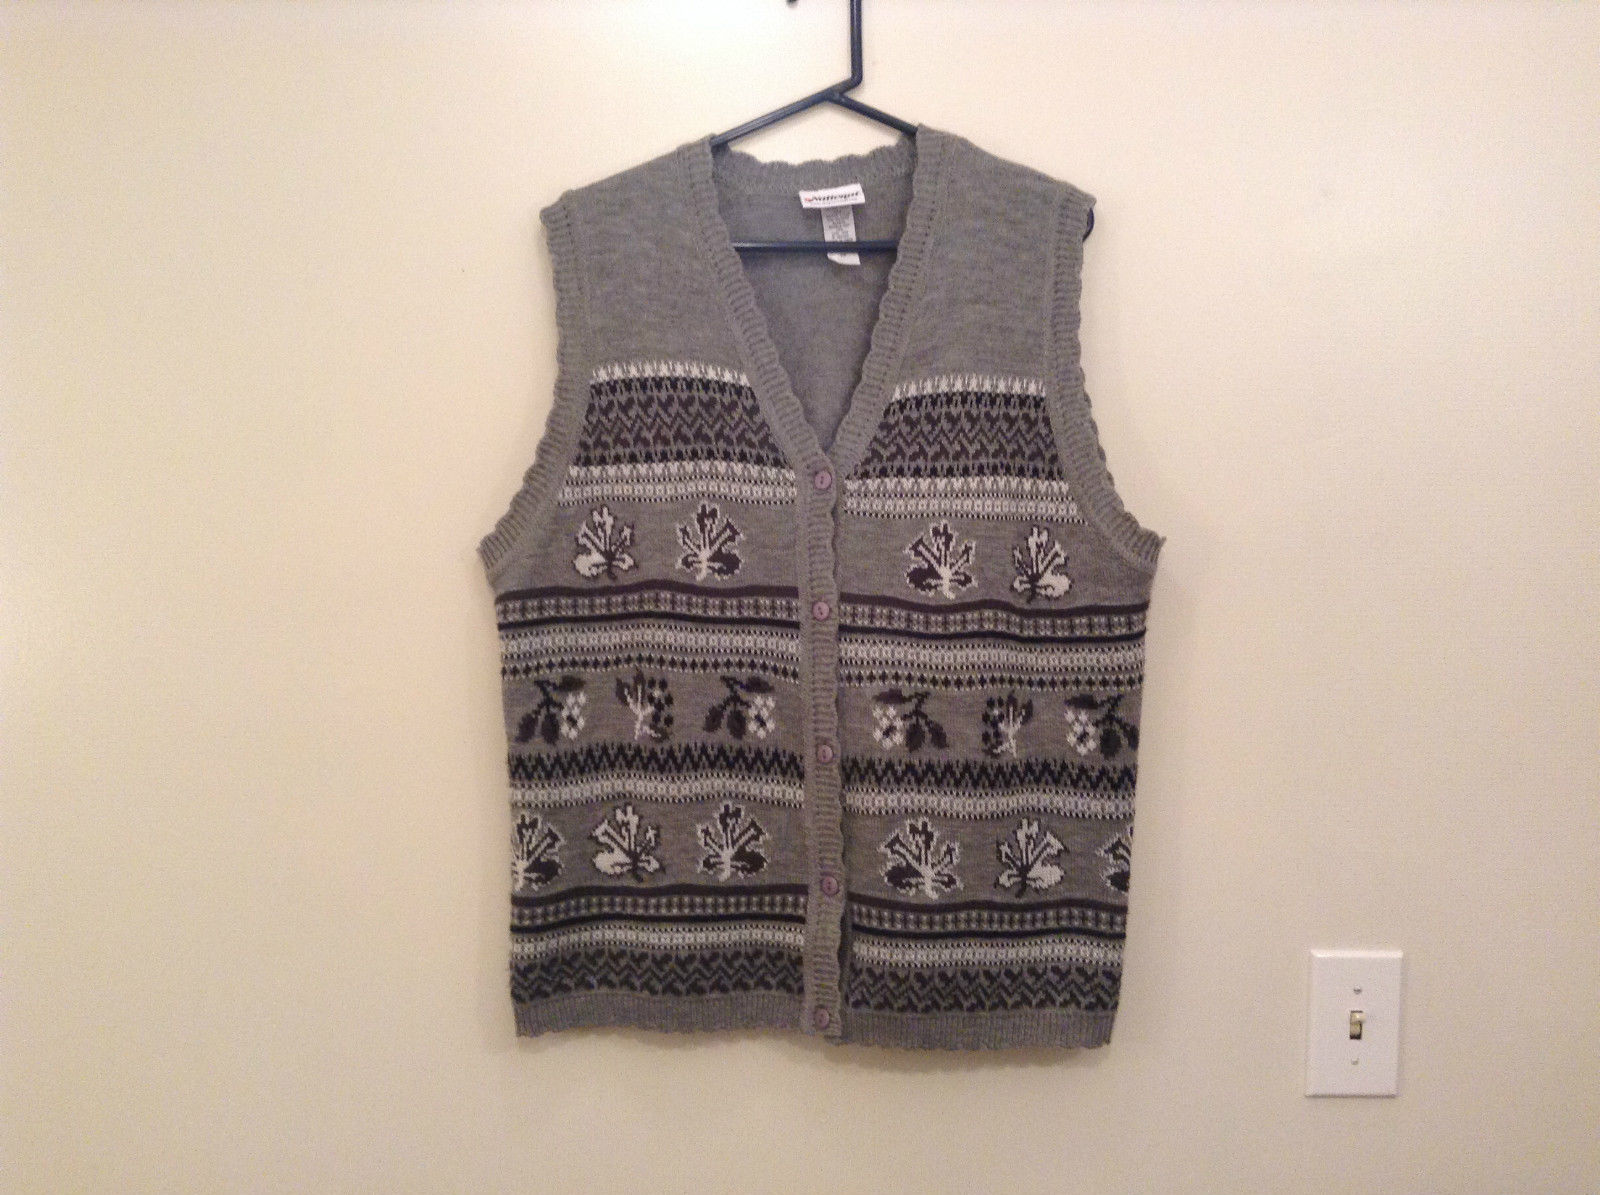 National Gray Vest Leaf Pattern Stripes Knitted V Neck Size 2X Button Closure